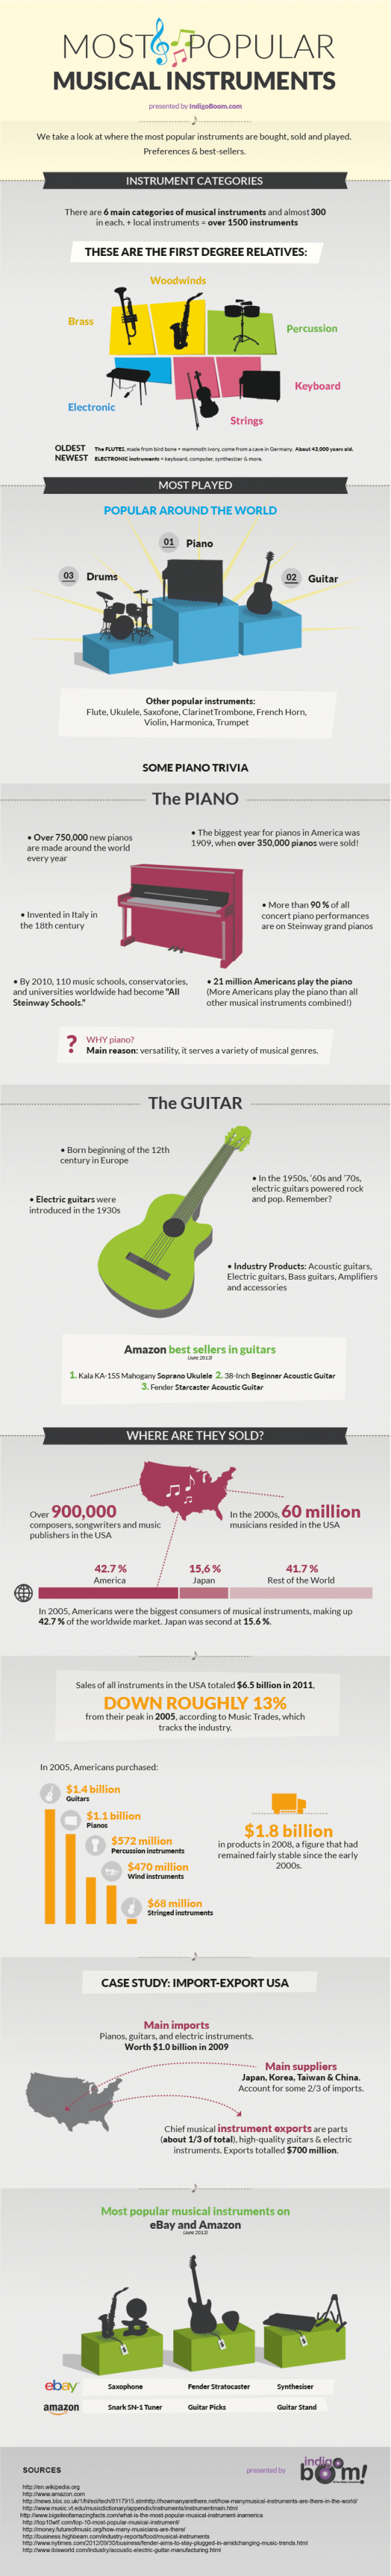 The Most Popular Musical Instruments